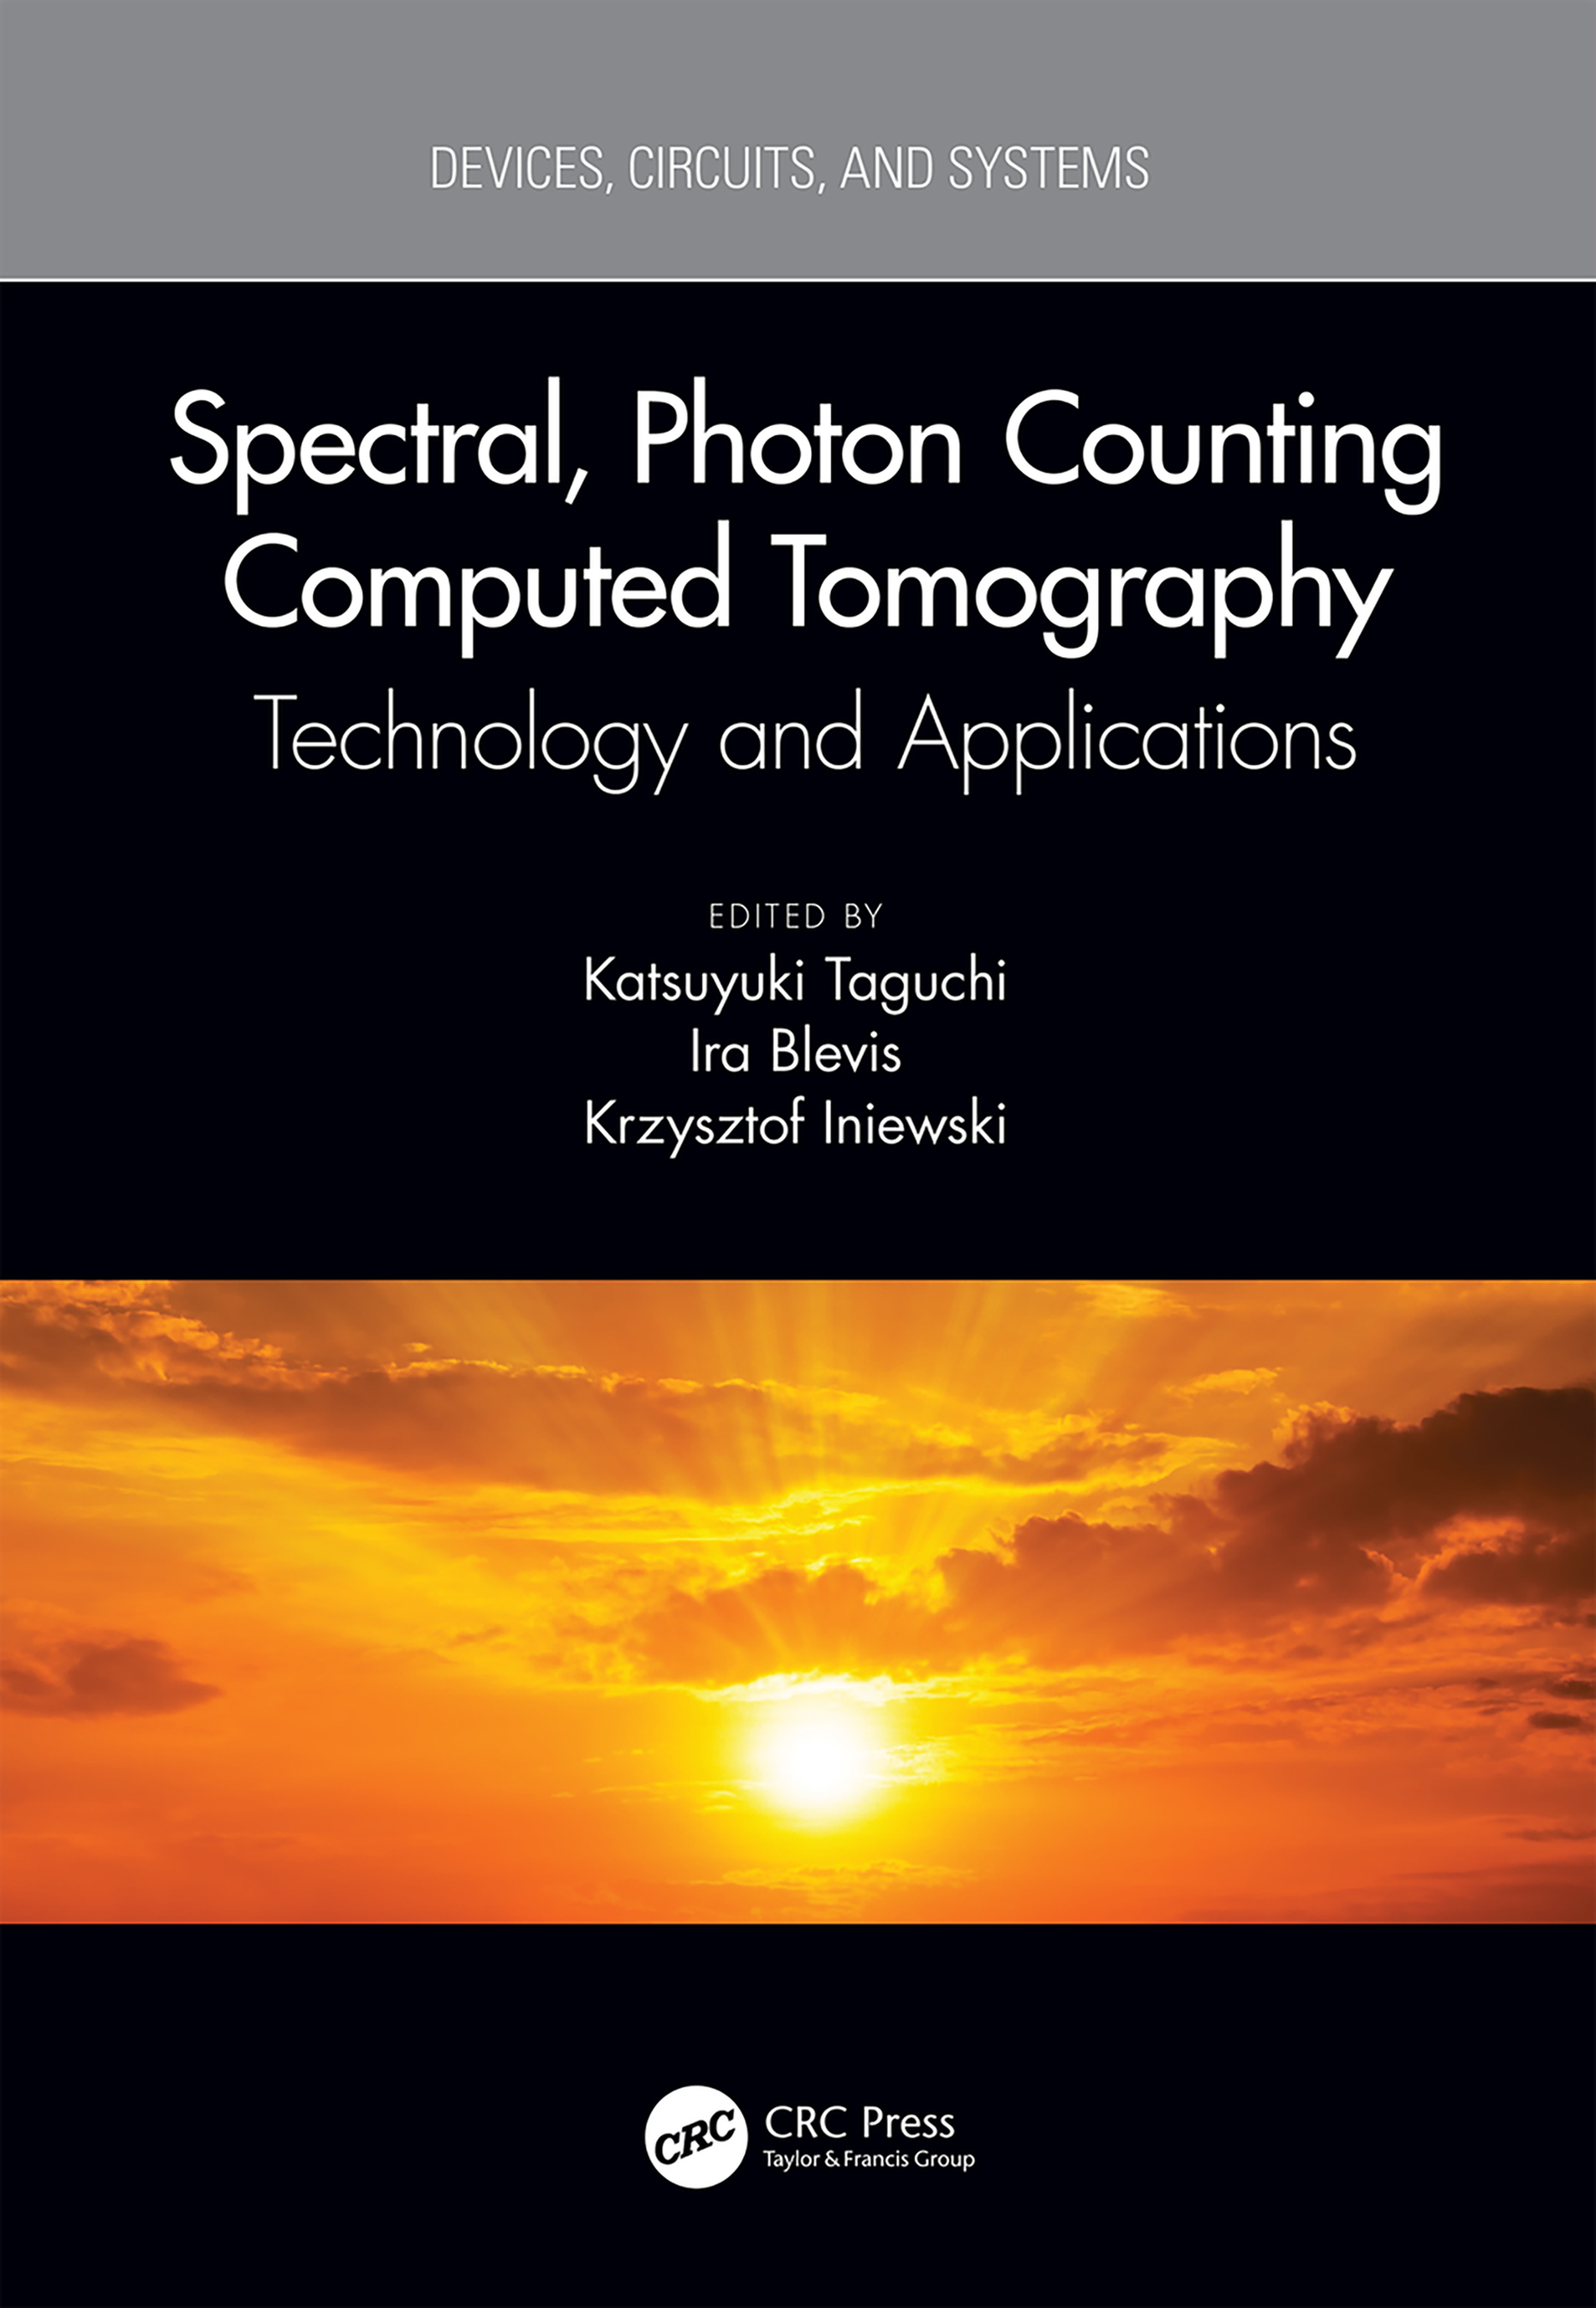 Advances in and Uses of Contrast Agents for Spectral Photon Counting Computed Tomography